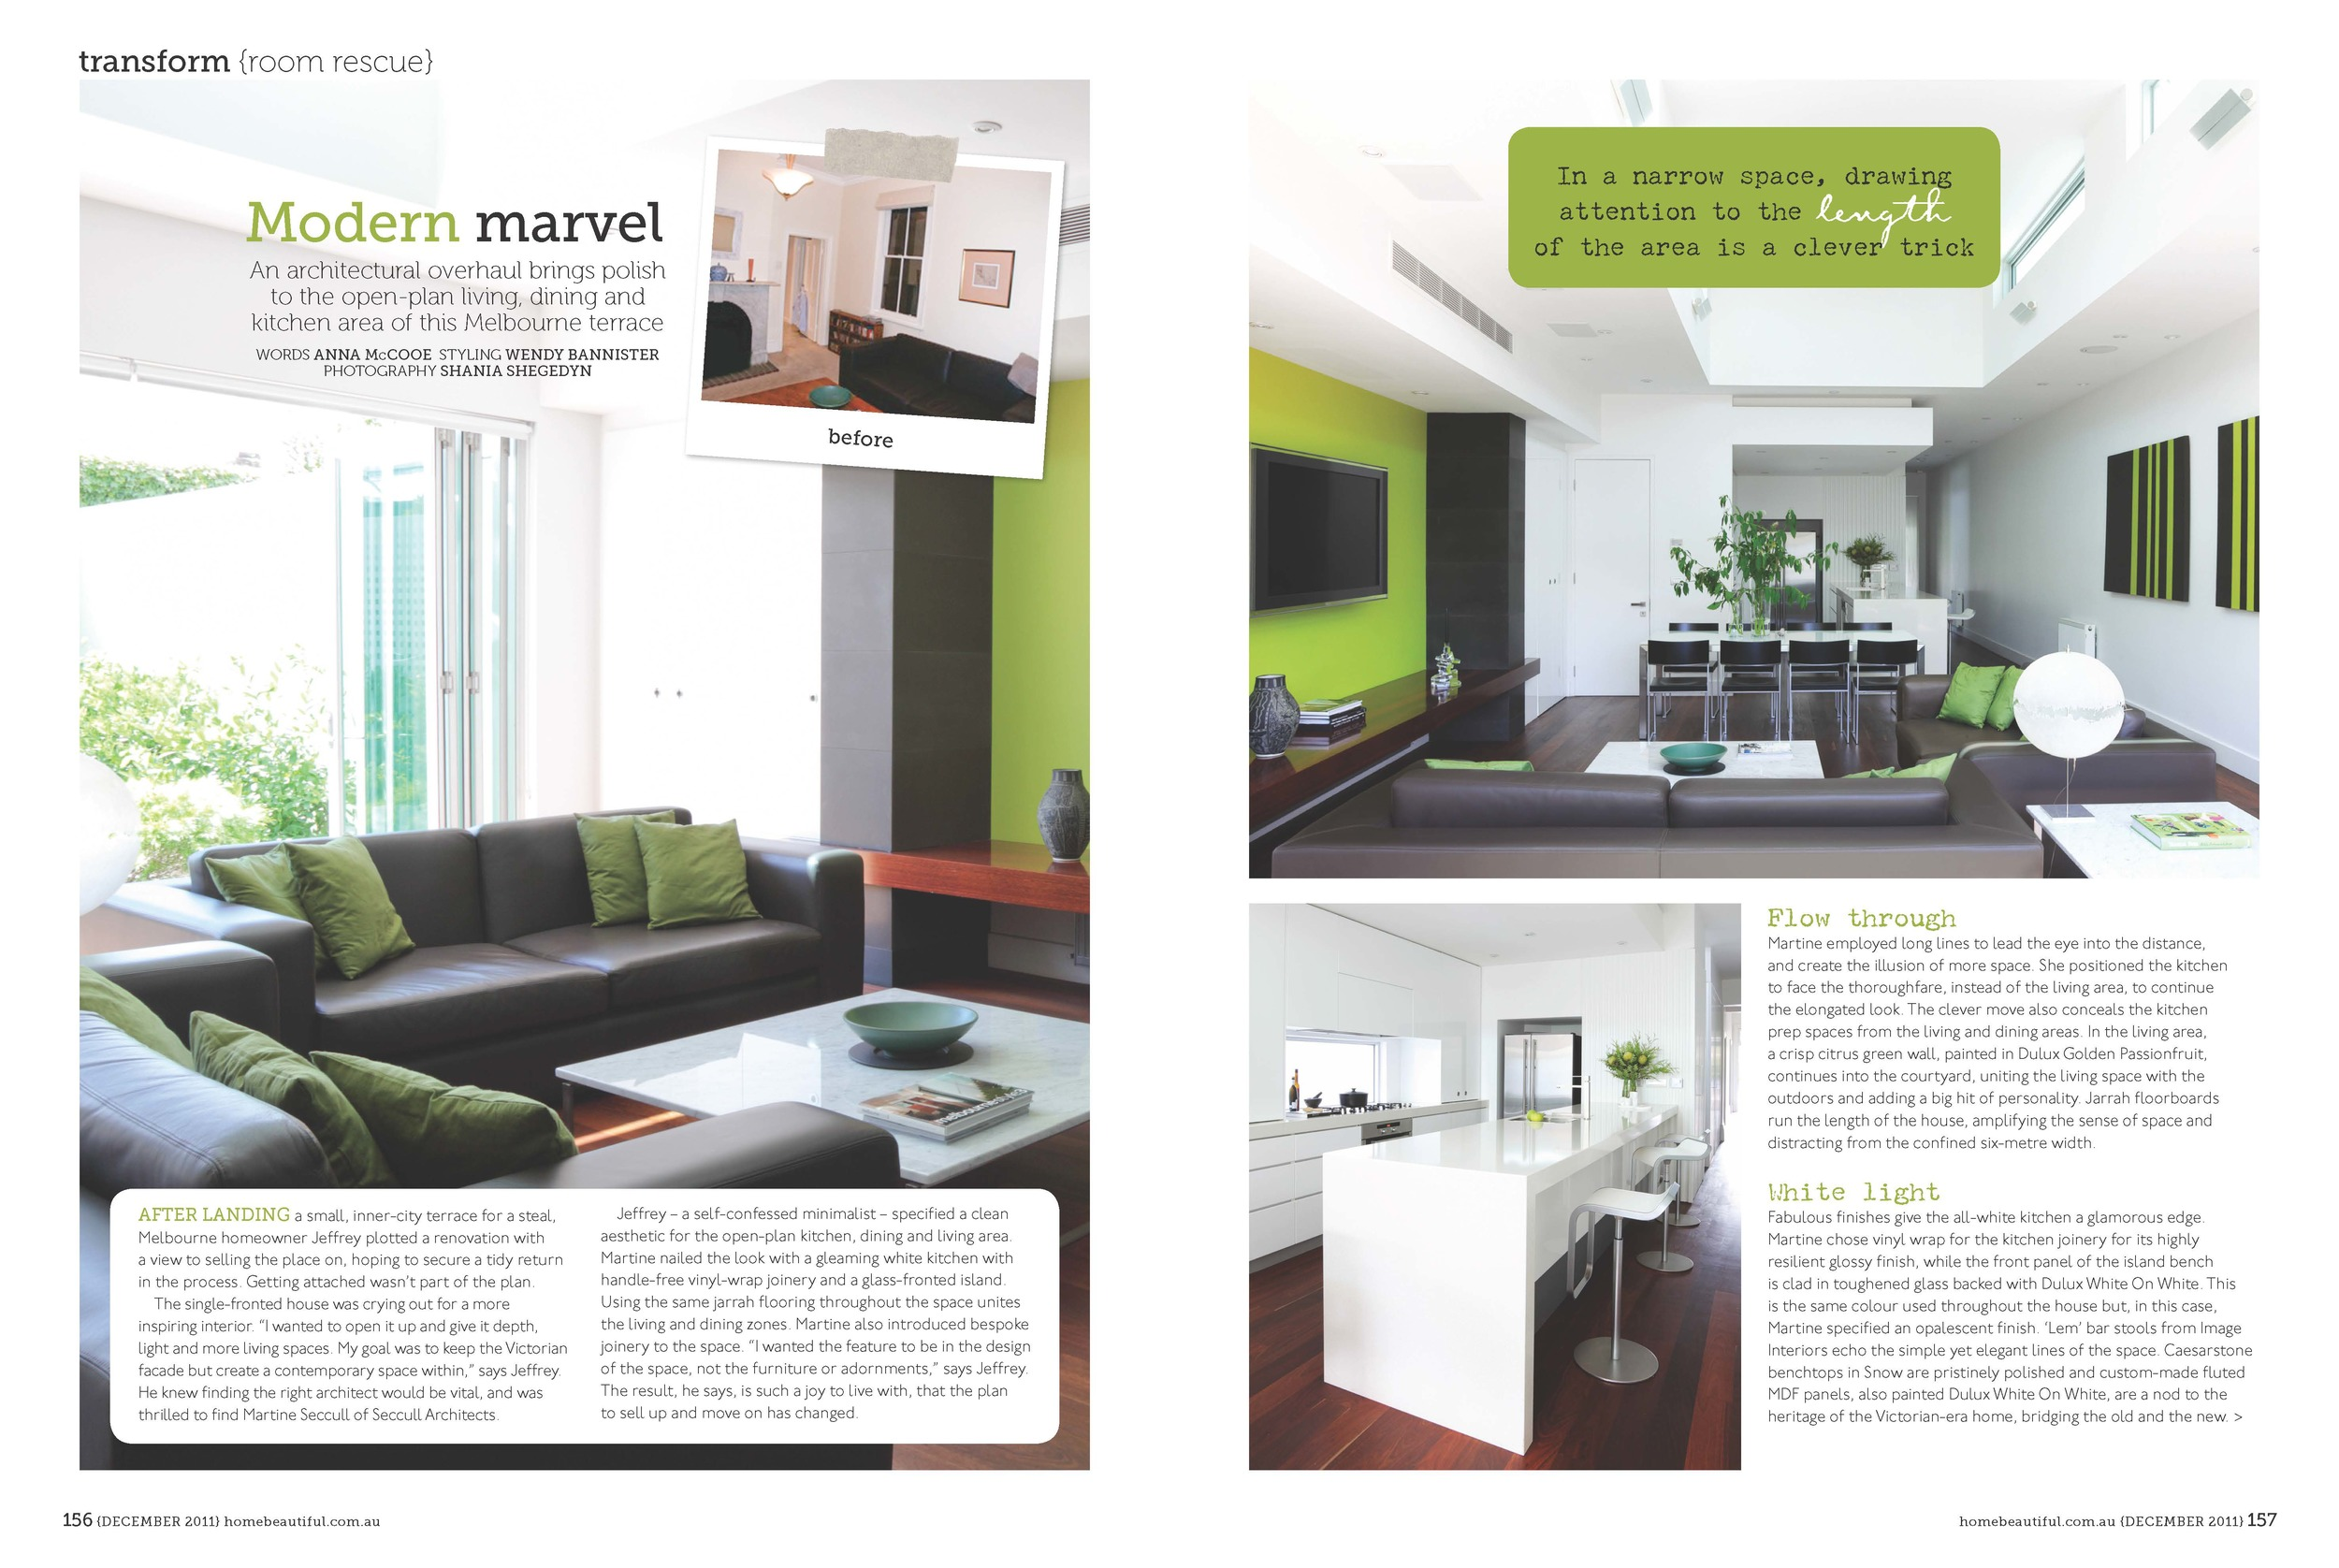 Home Beautiful article Dec 2011_Page_1.jpg